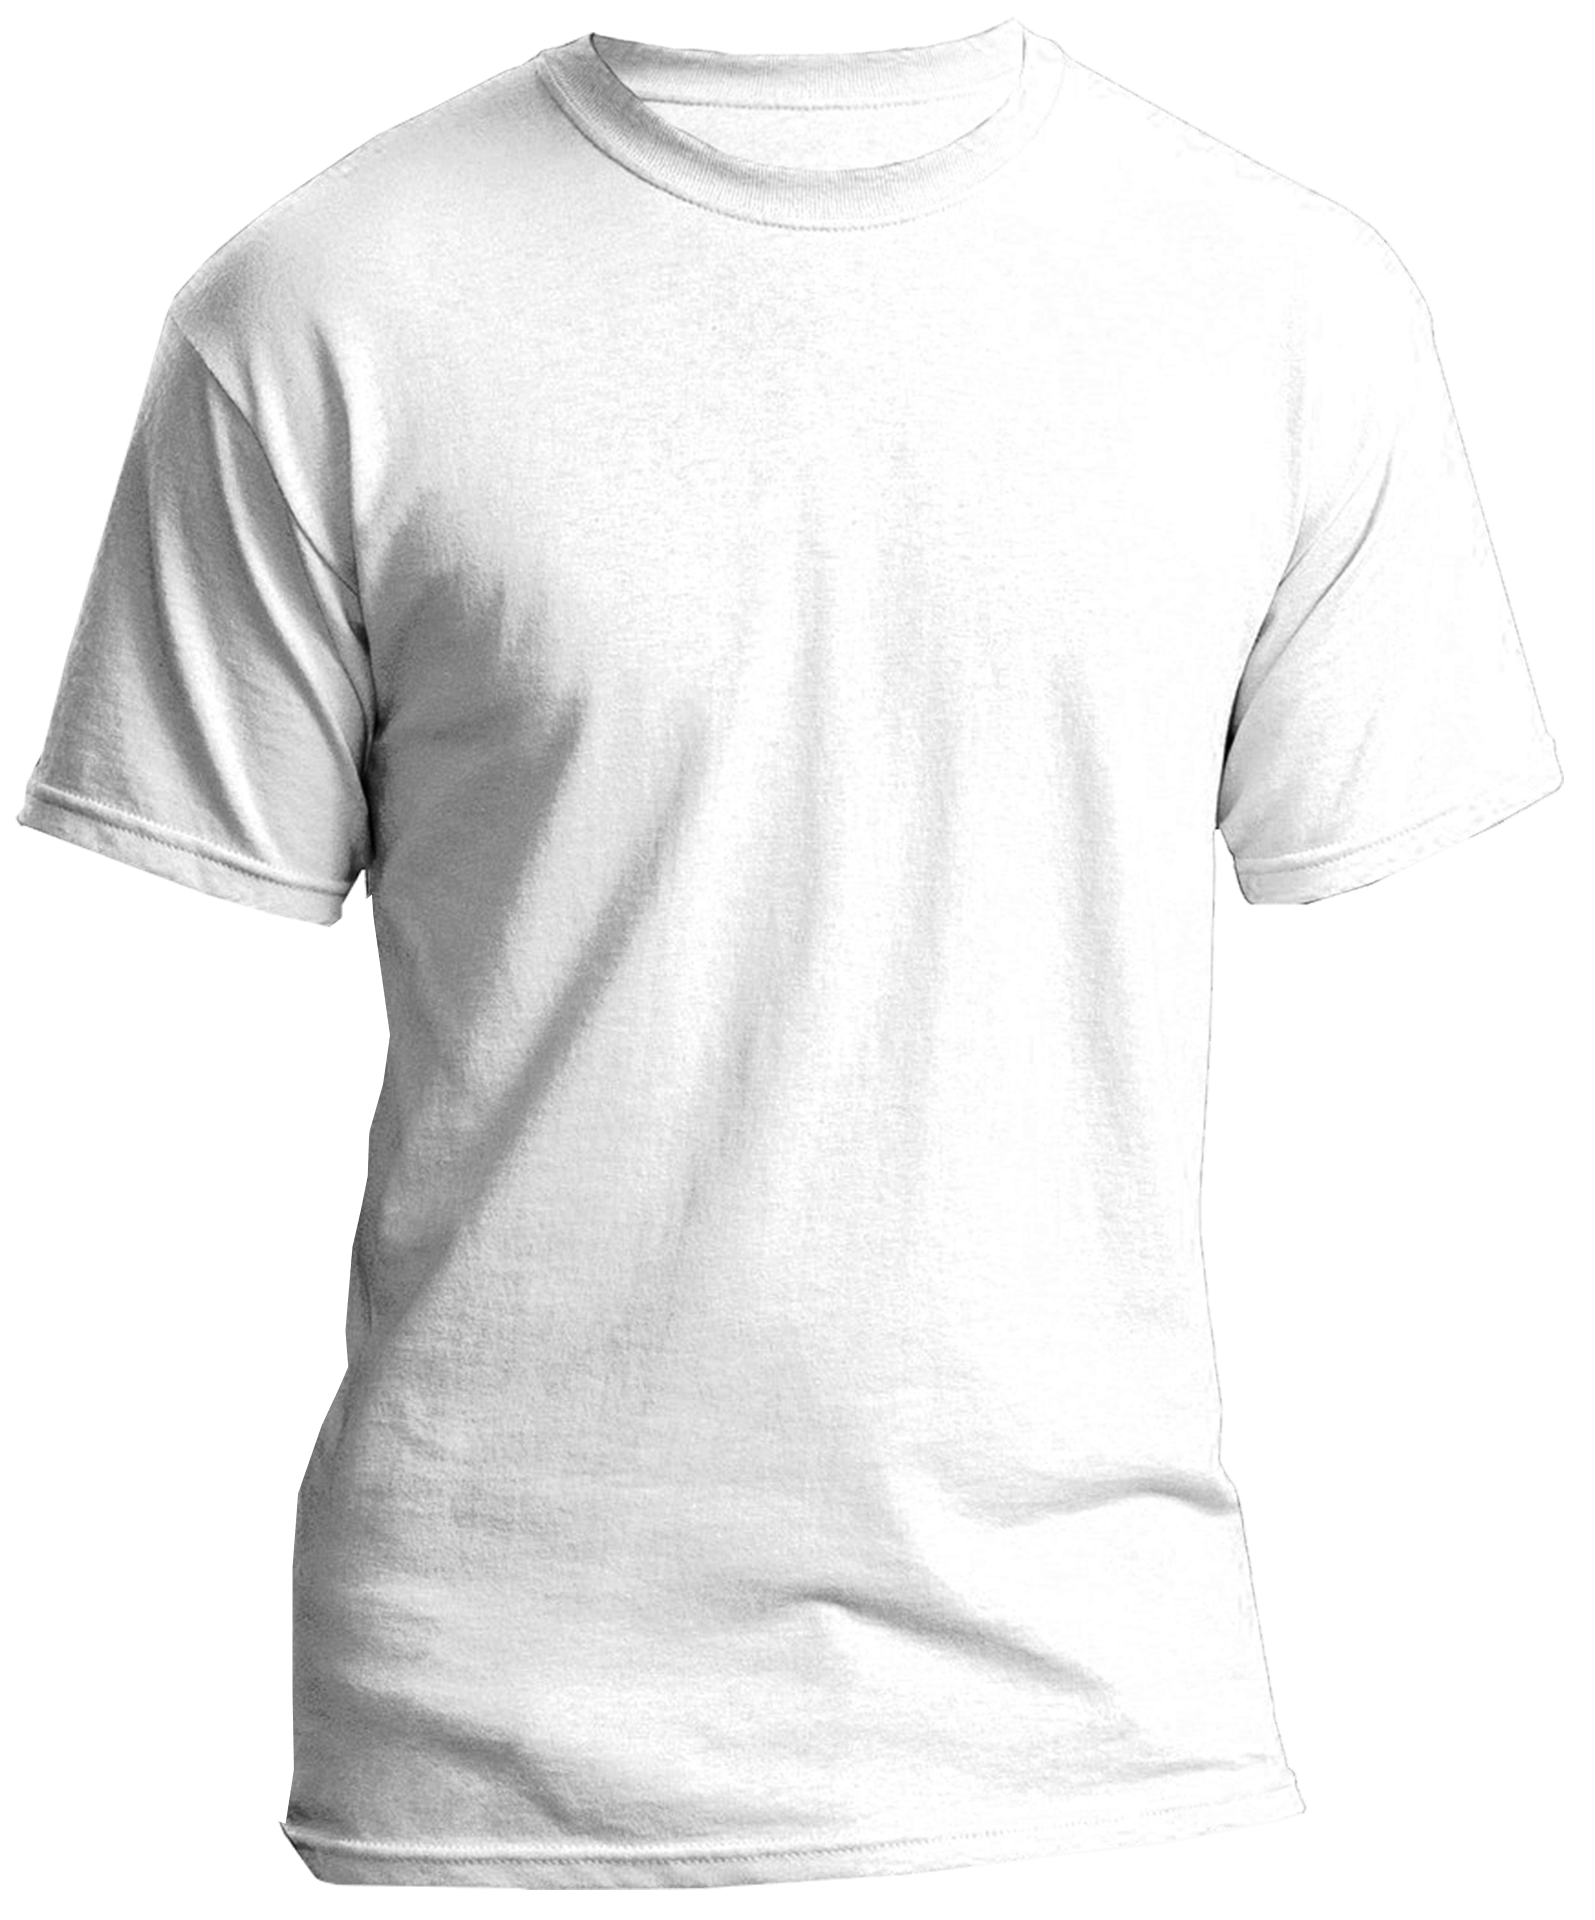 Create T Shirt Product Mockups with GIMP.